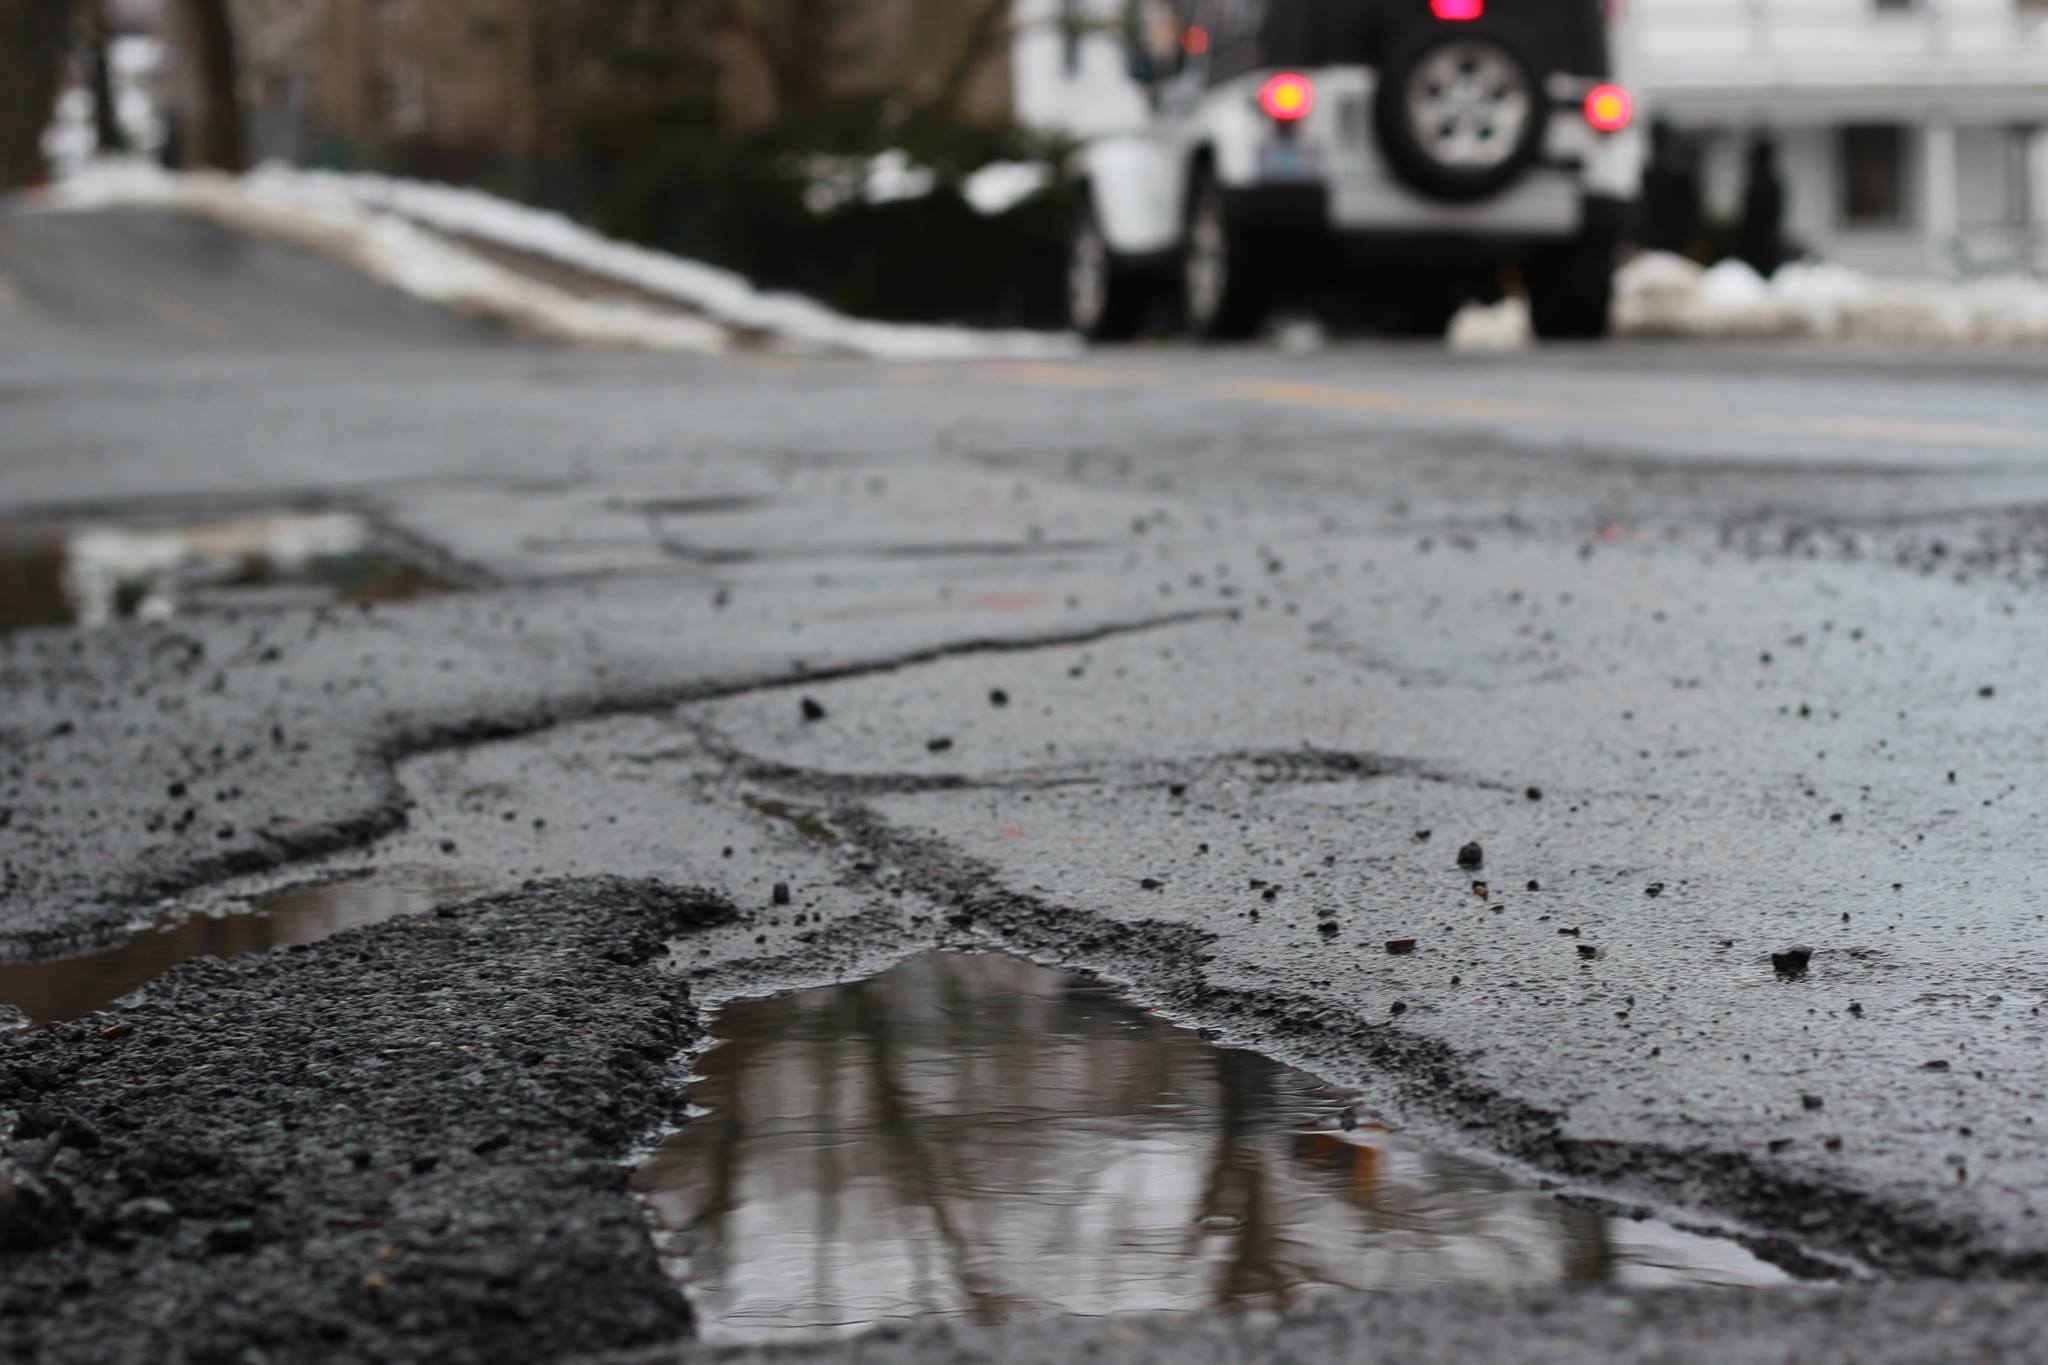 Potholes are created by fluctuation in temperature and wear and tear from snow-clearing equipment.